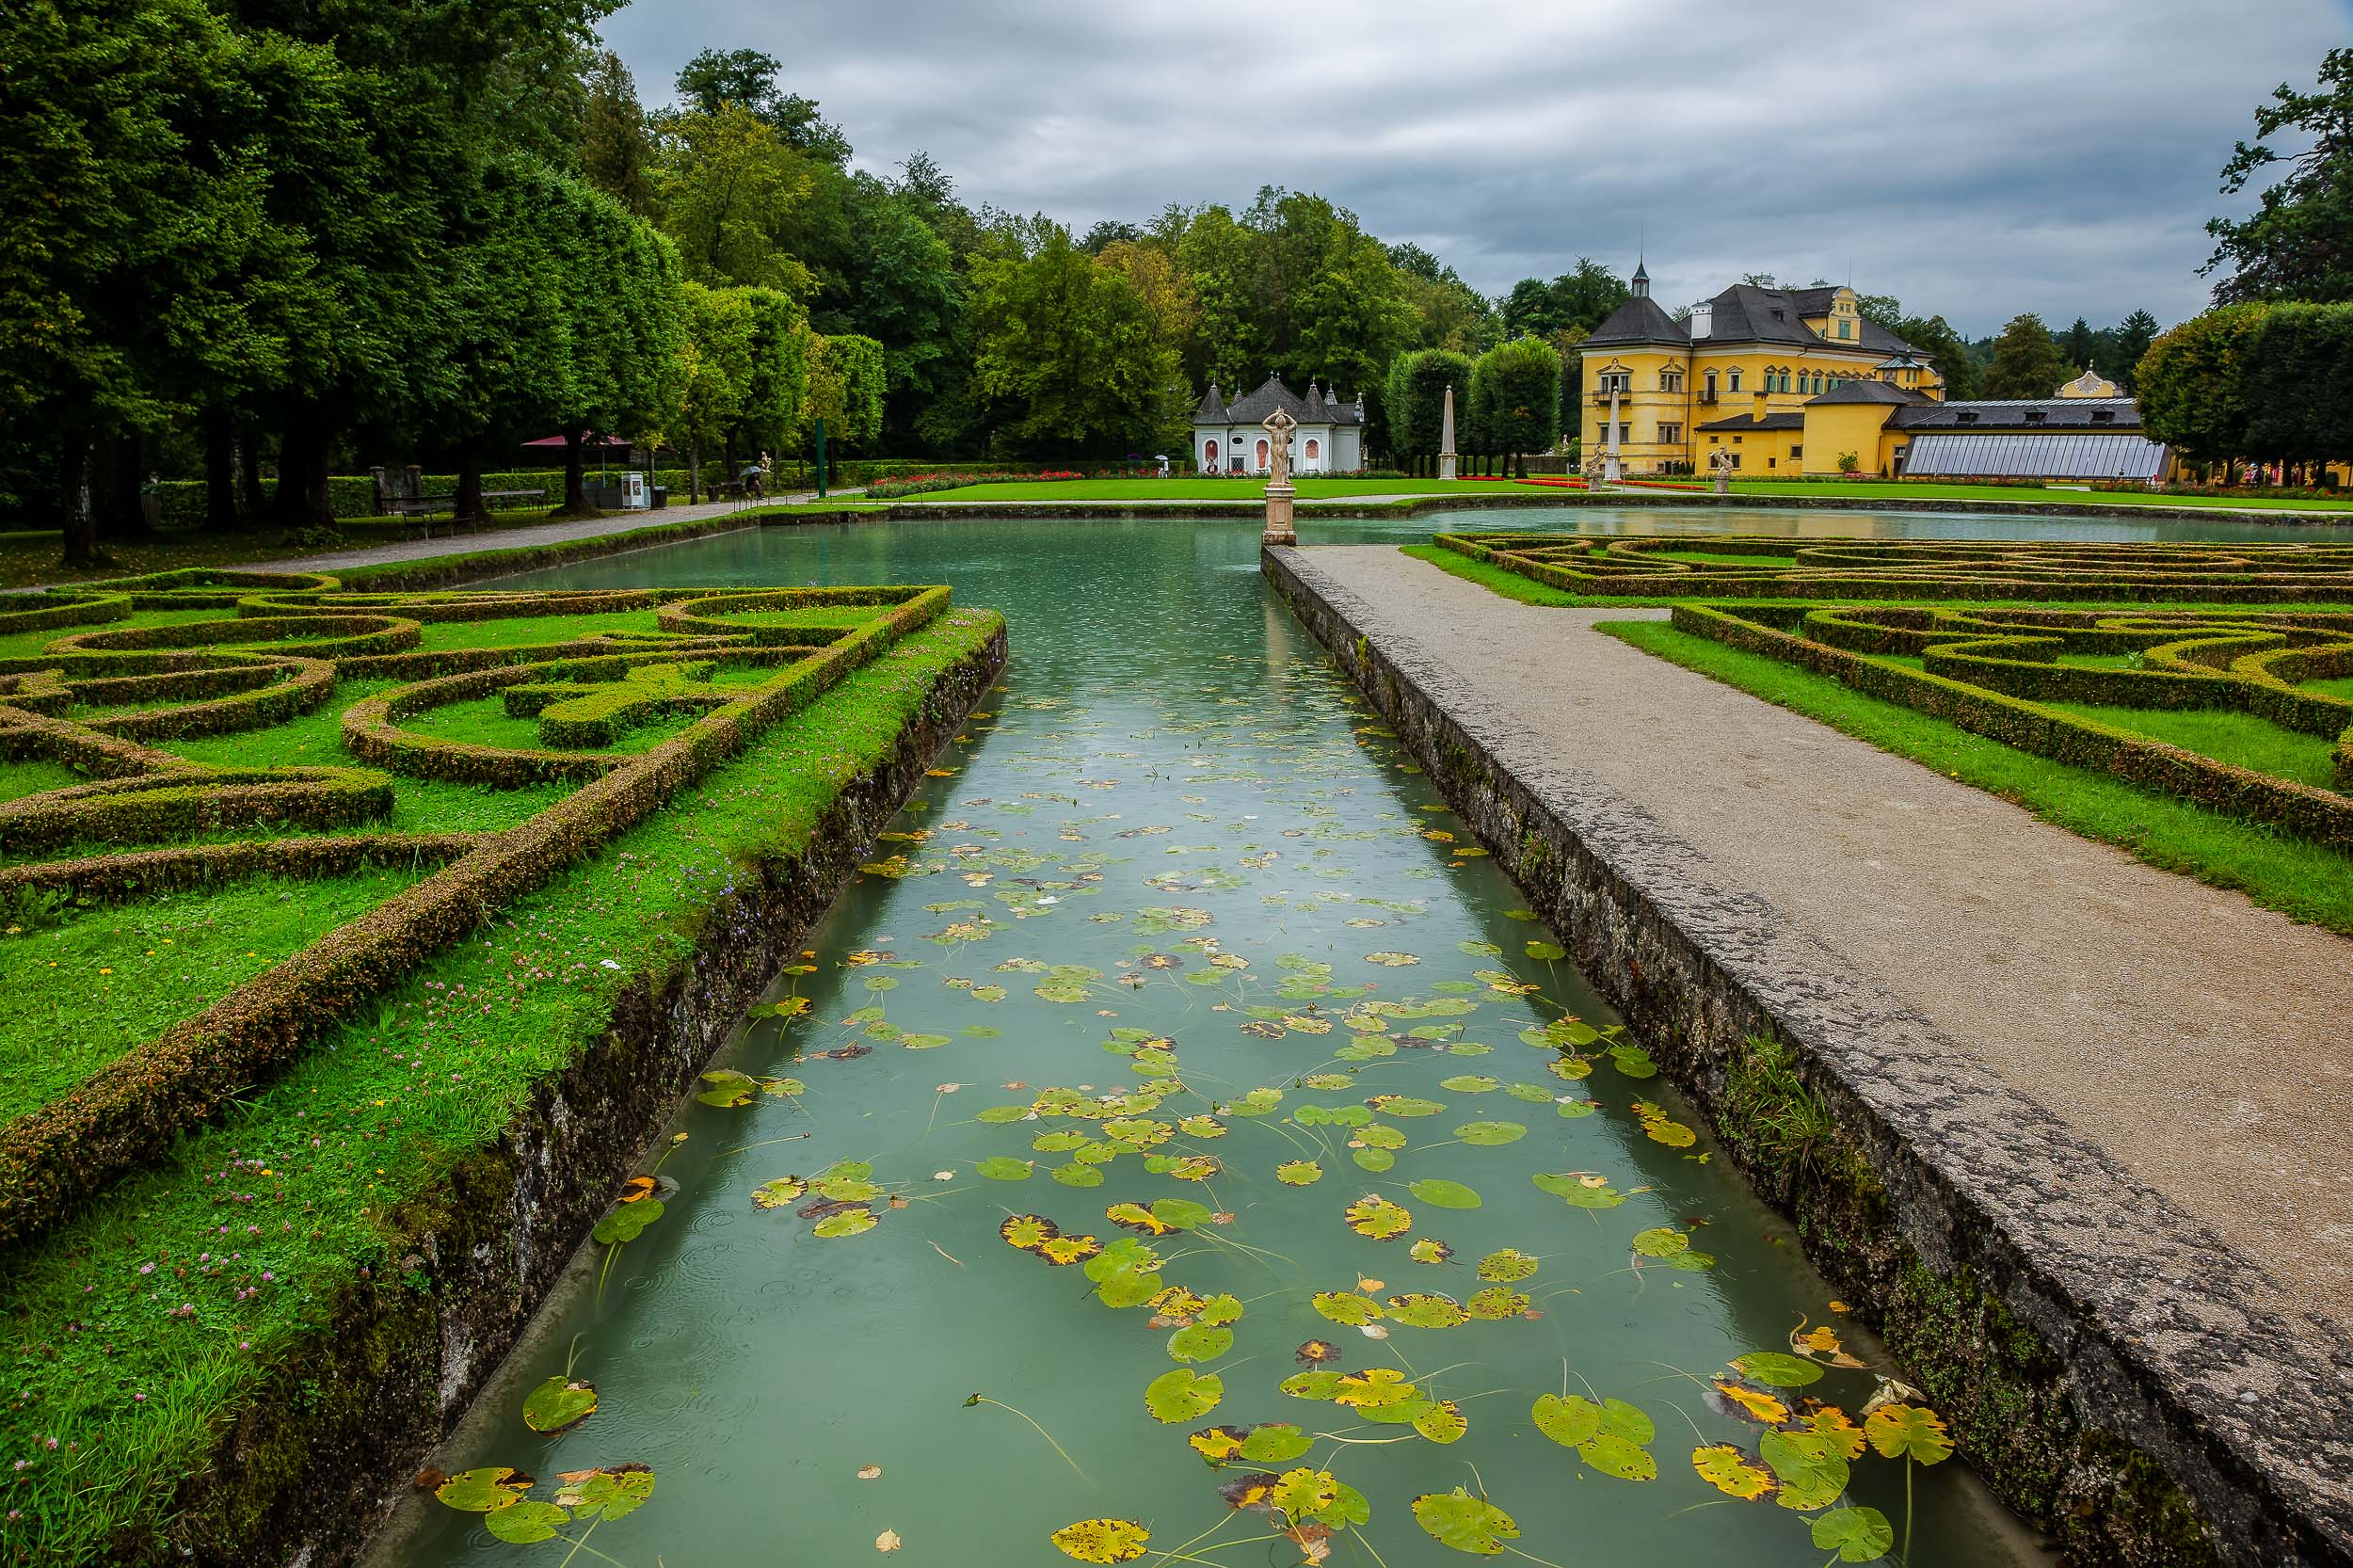 What ever the weather    Salzburg is a beautiful destination    and a wonderful place to explore on foot. This photo showcases    a pool in a beautifully designed garden    where trees and the colors green and yellow dominate.